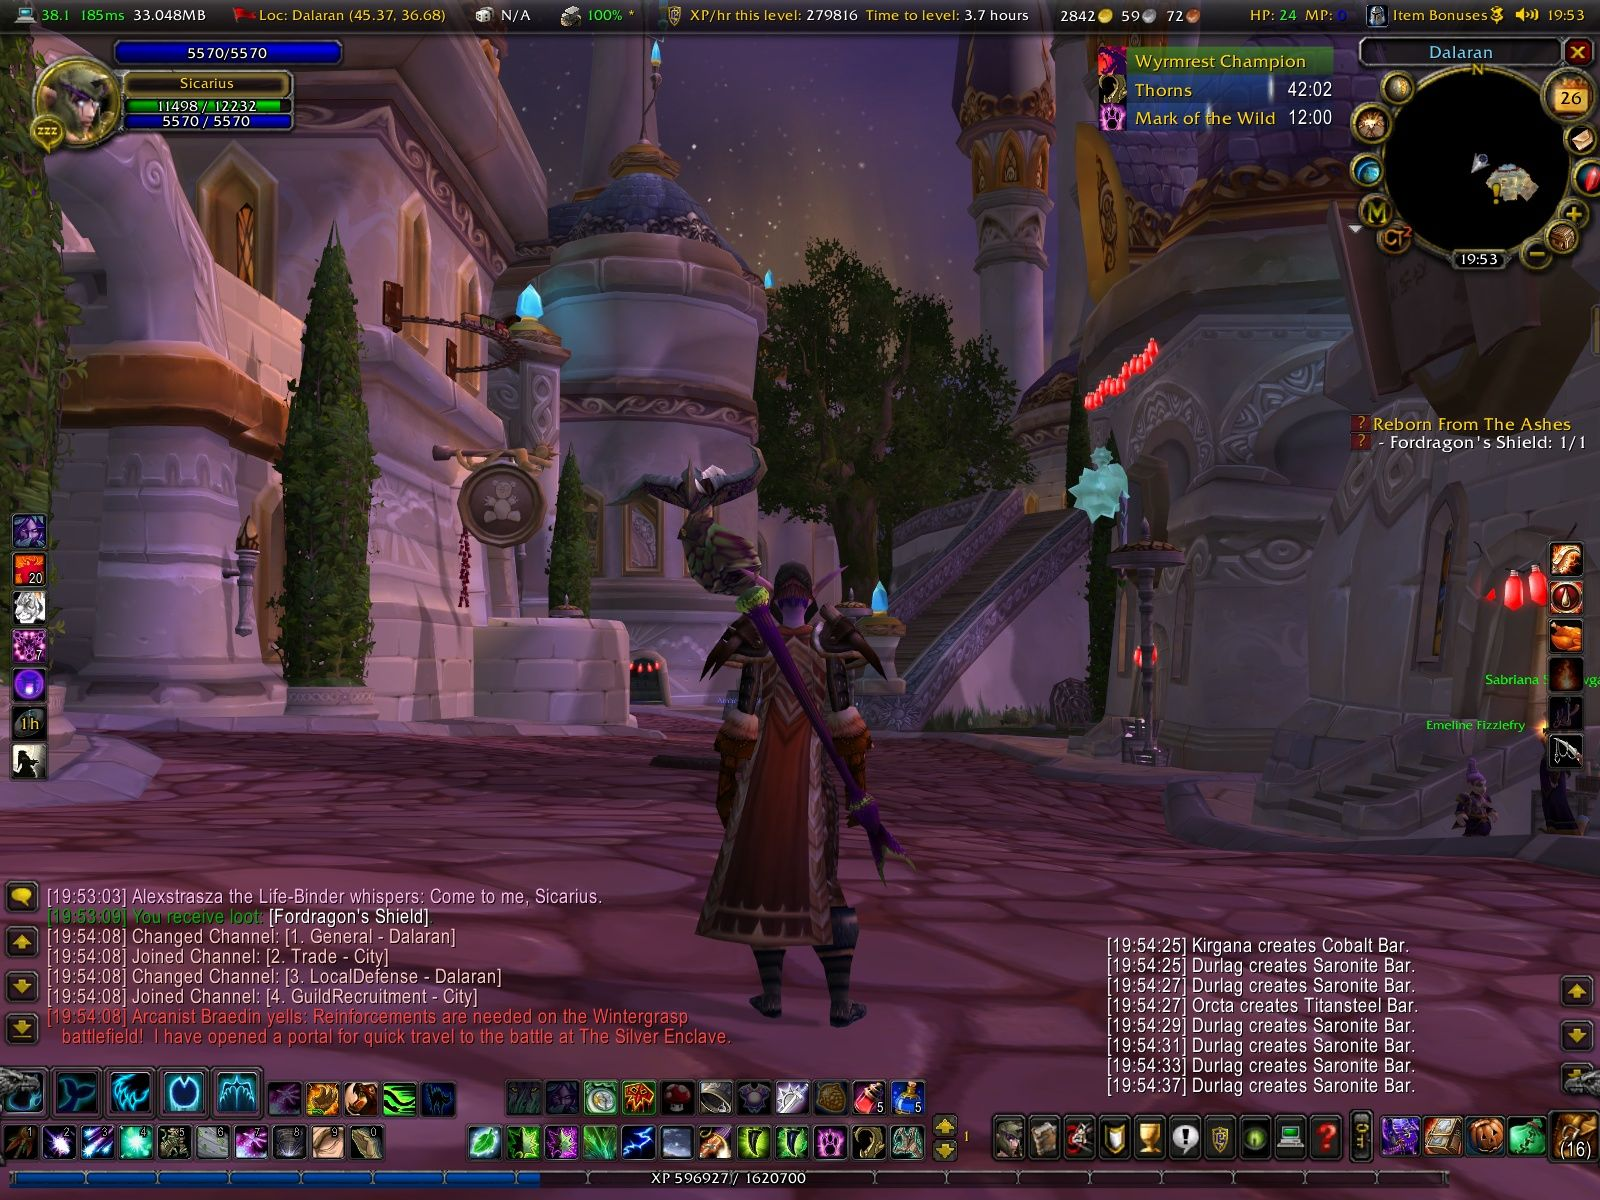 World of Warcraft: Wrath of the Lich King Windows Dalaran - City in the clouds.